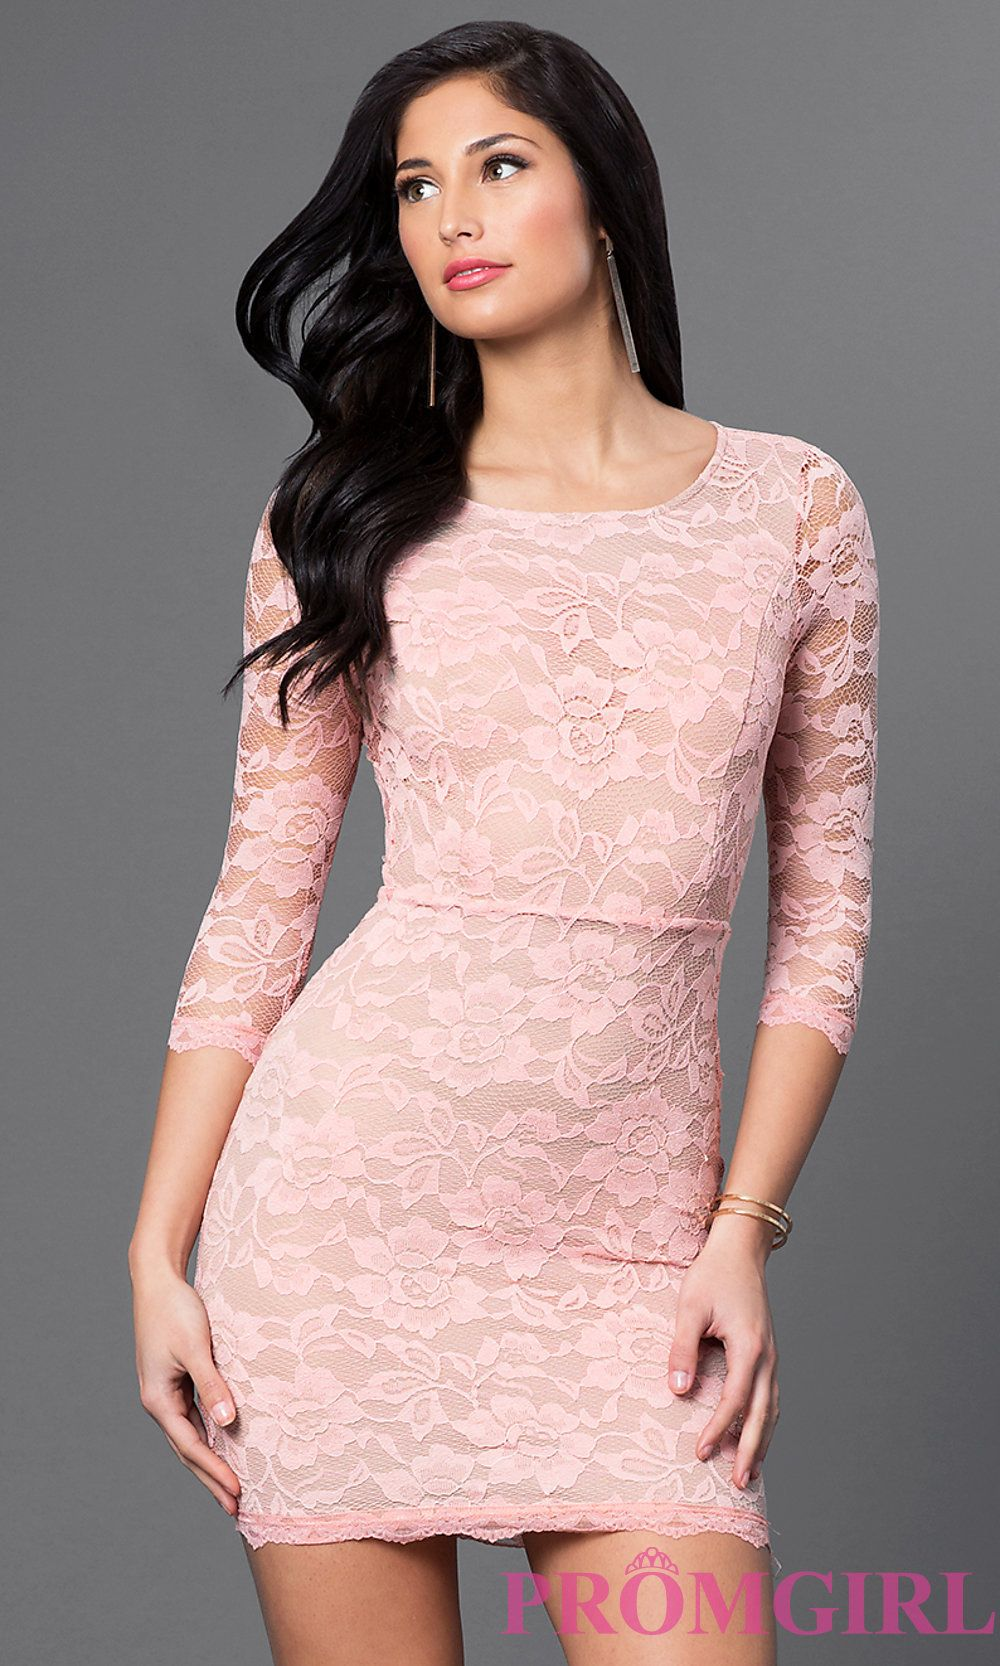 Image of short openback lacemini dress detail image cute stuff